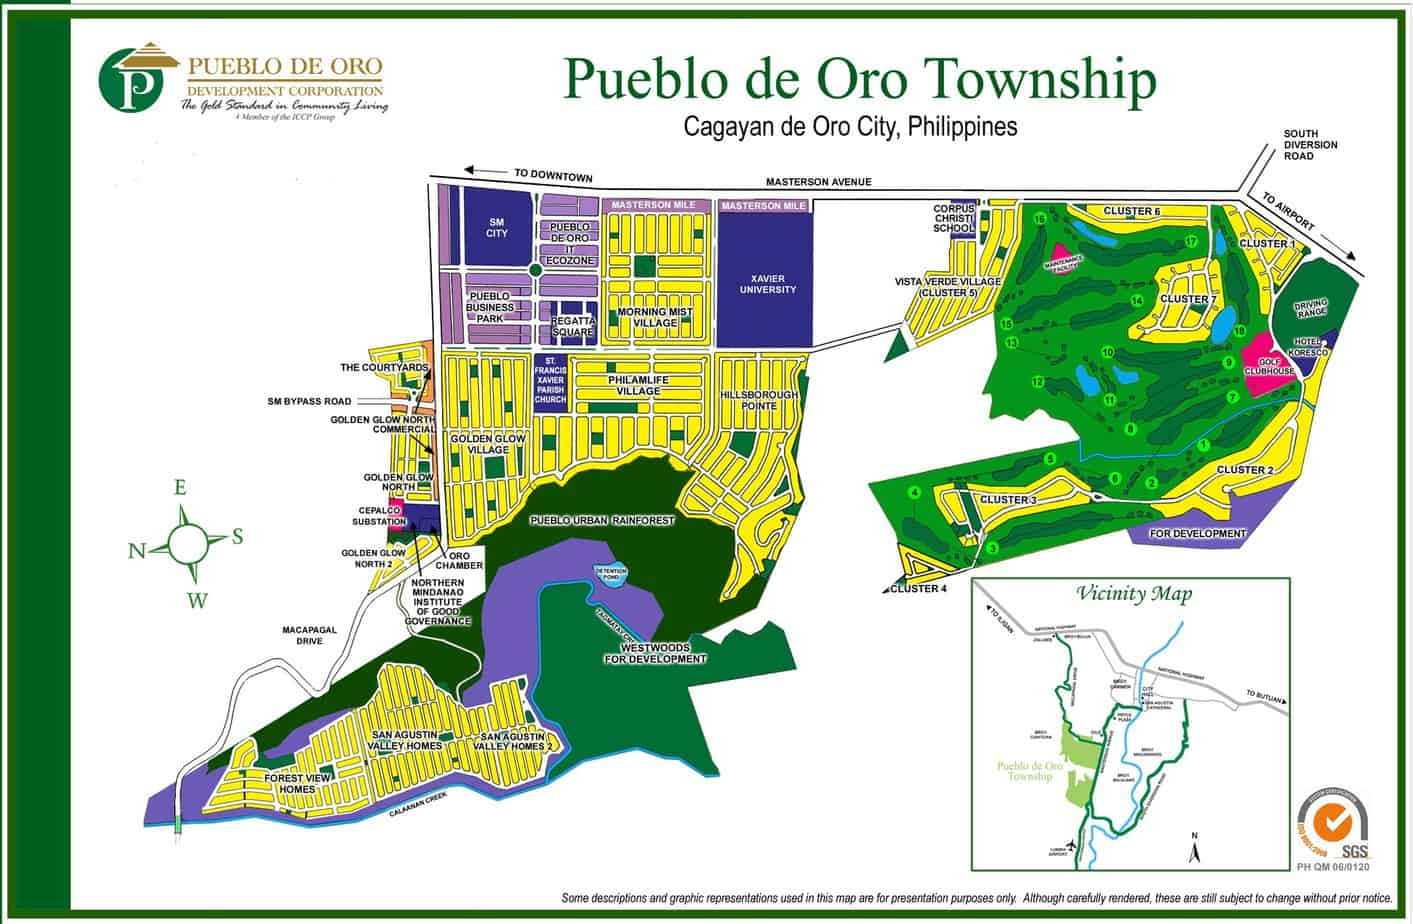 CAGAYAN DE ORO HOMES: Pueblo de Oro For Sale Houses & Lots